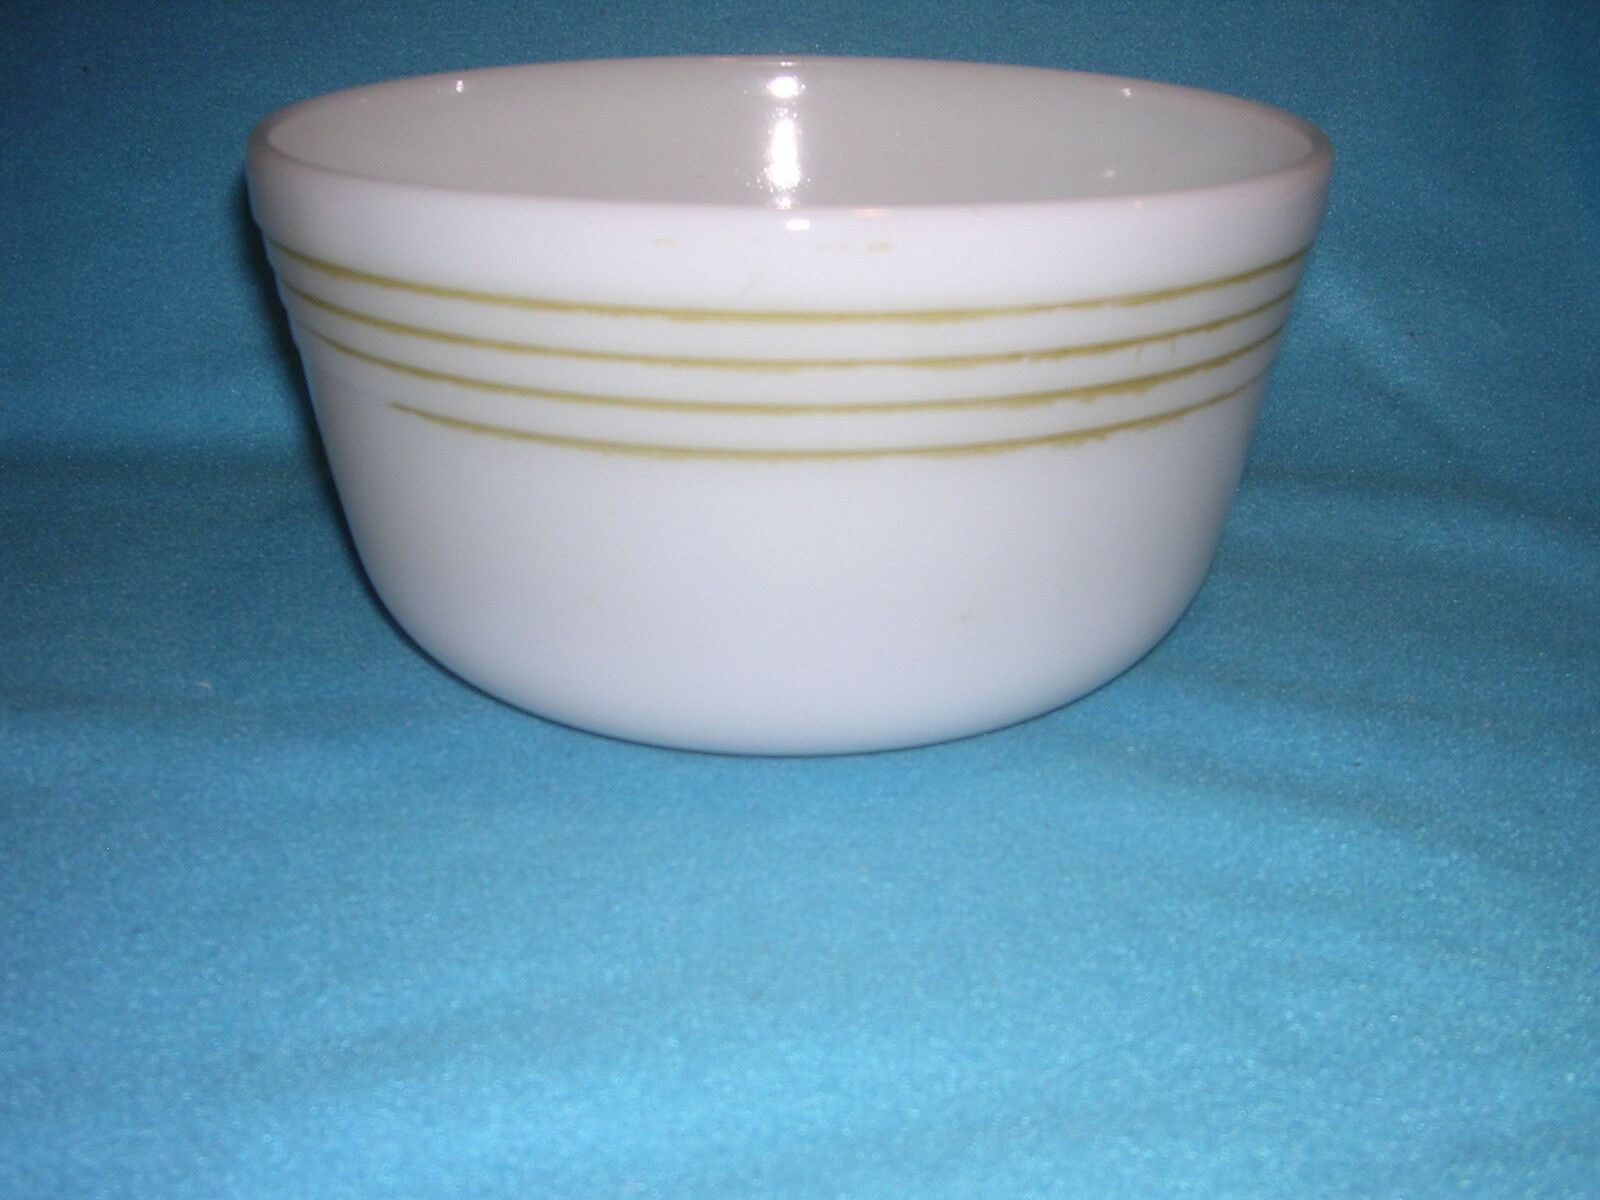 VTG Pyrex White Hamilton Beach Stand White With Gold Bands Mixing Bowl Round #16